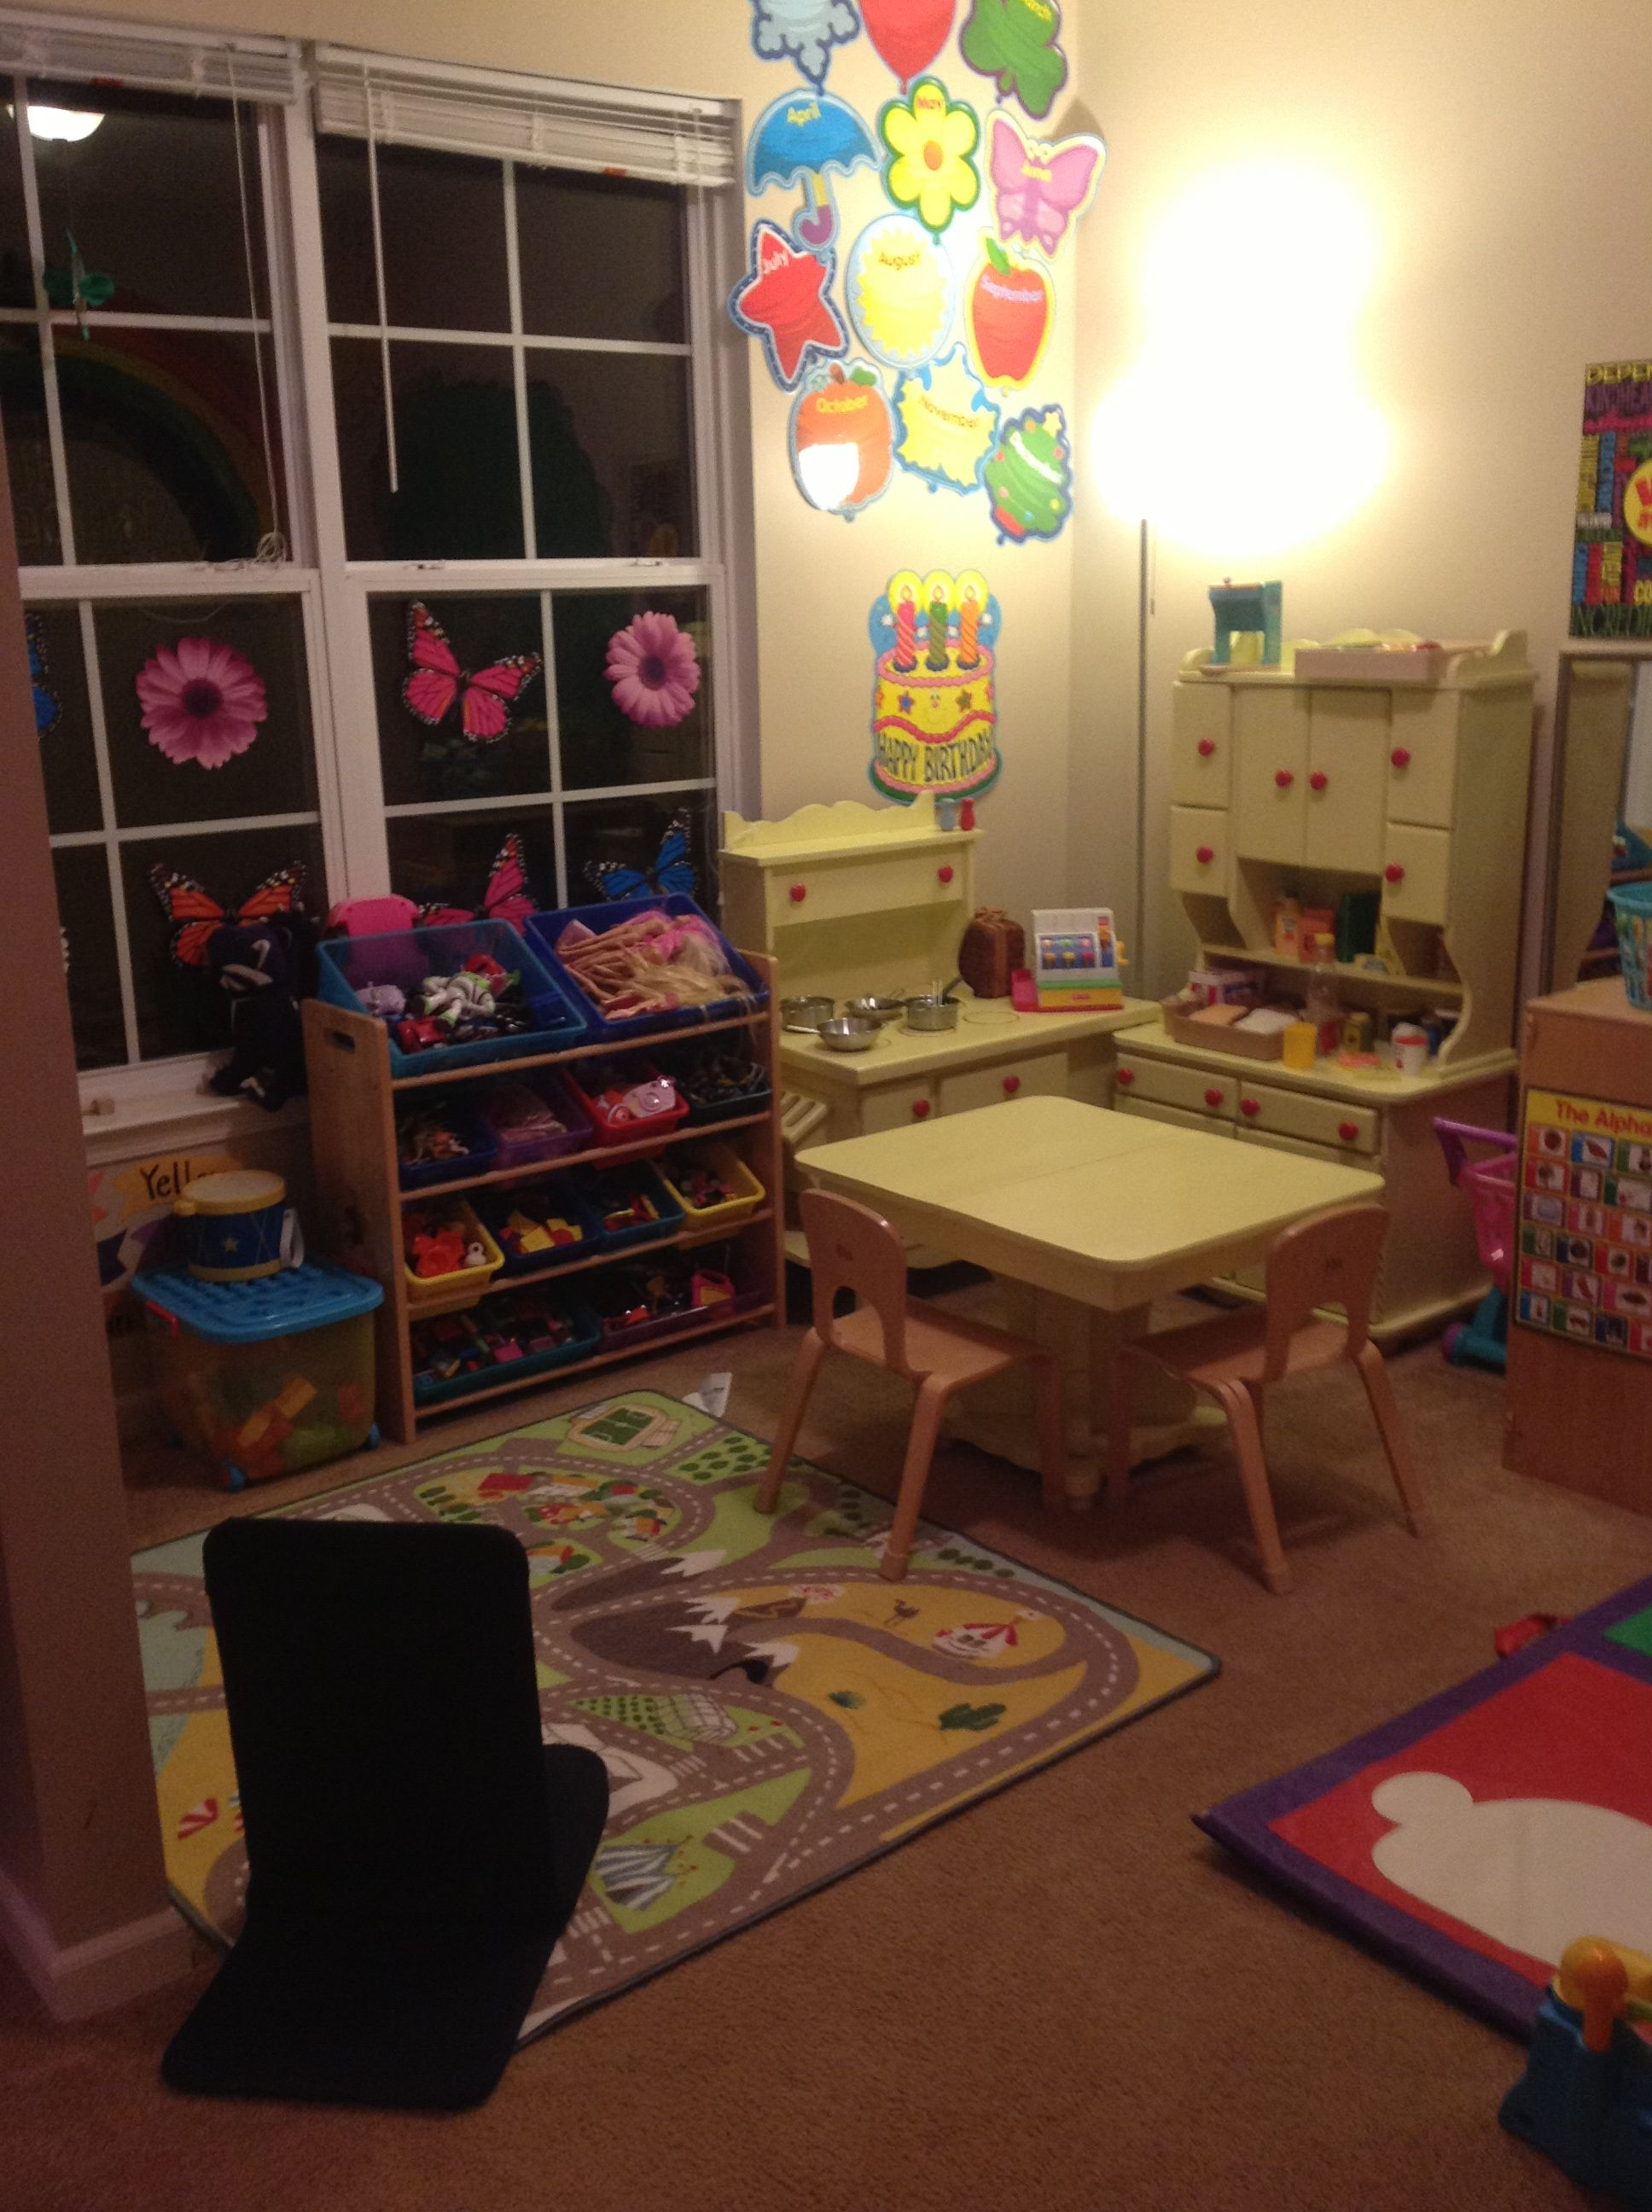 Small Area Home Childcare Setup Let 39 S See Some Photos Of Your Childcare Setting Importance